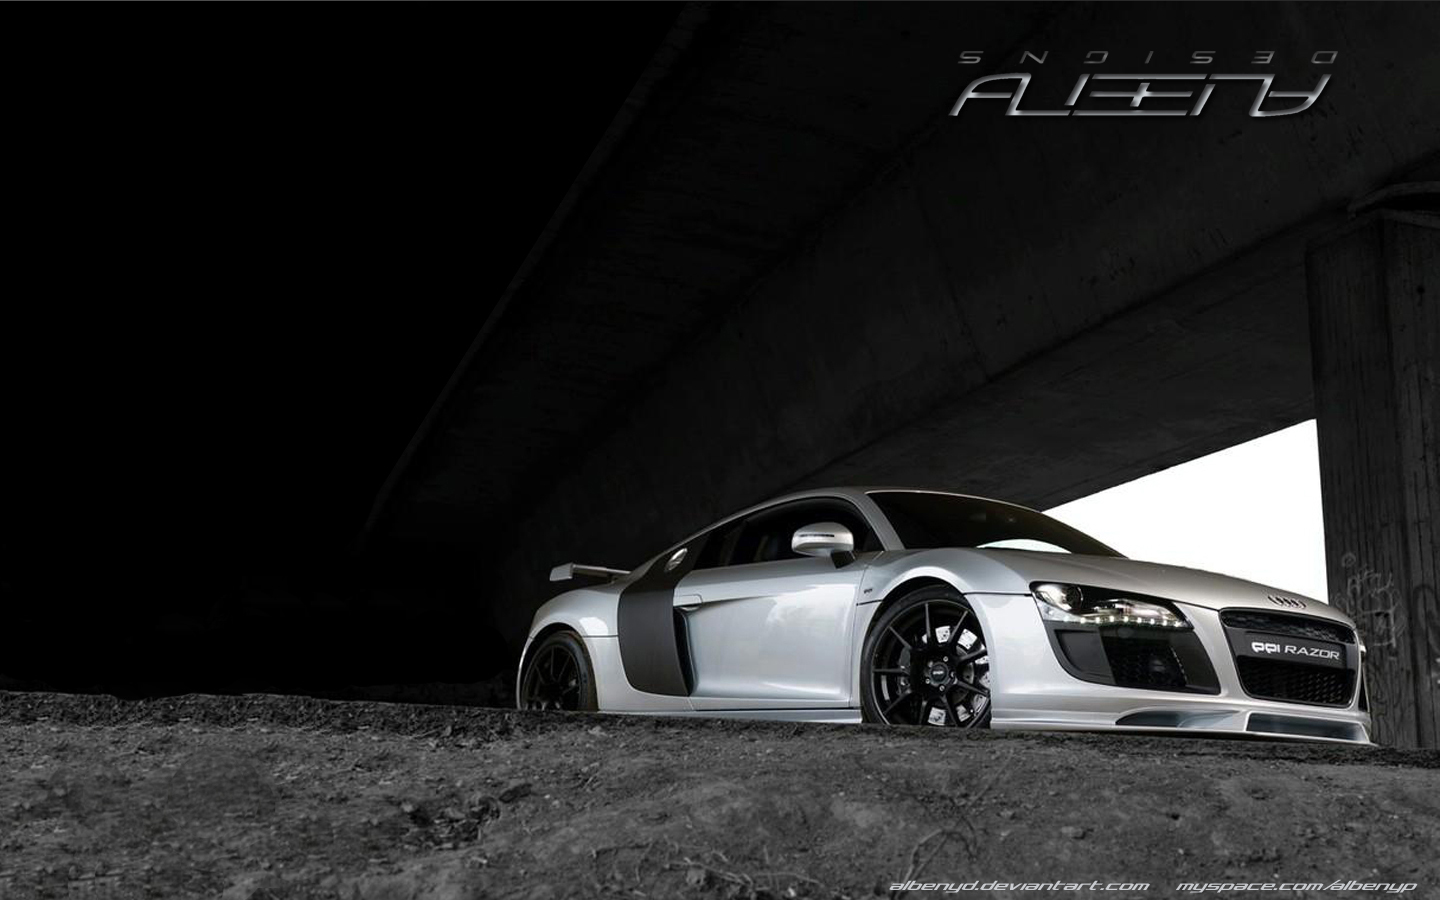 audi wallpaper%252c sports cars picture%252c images and photo download 1